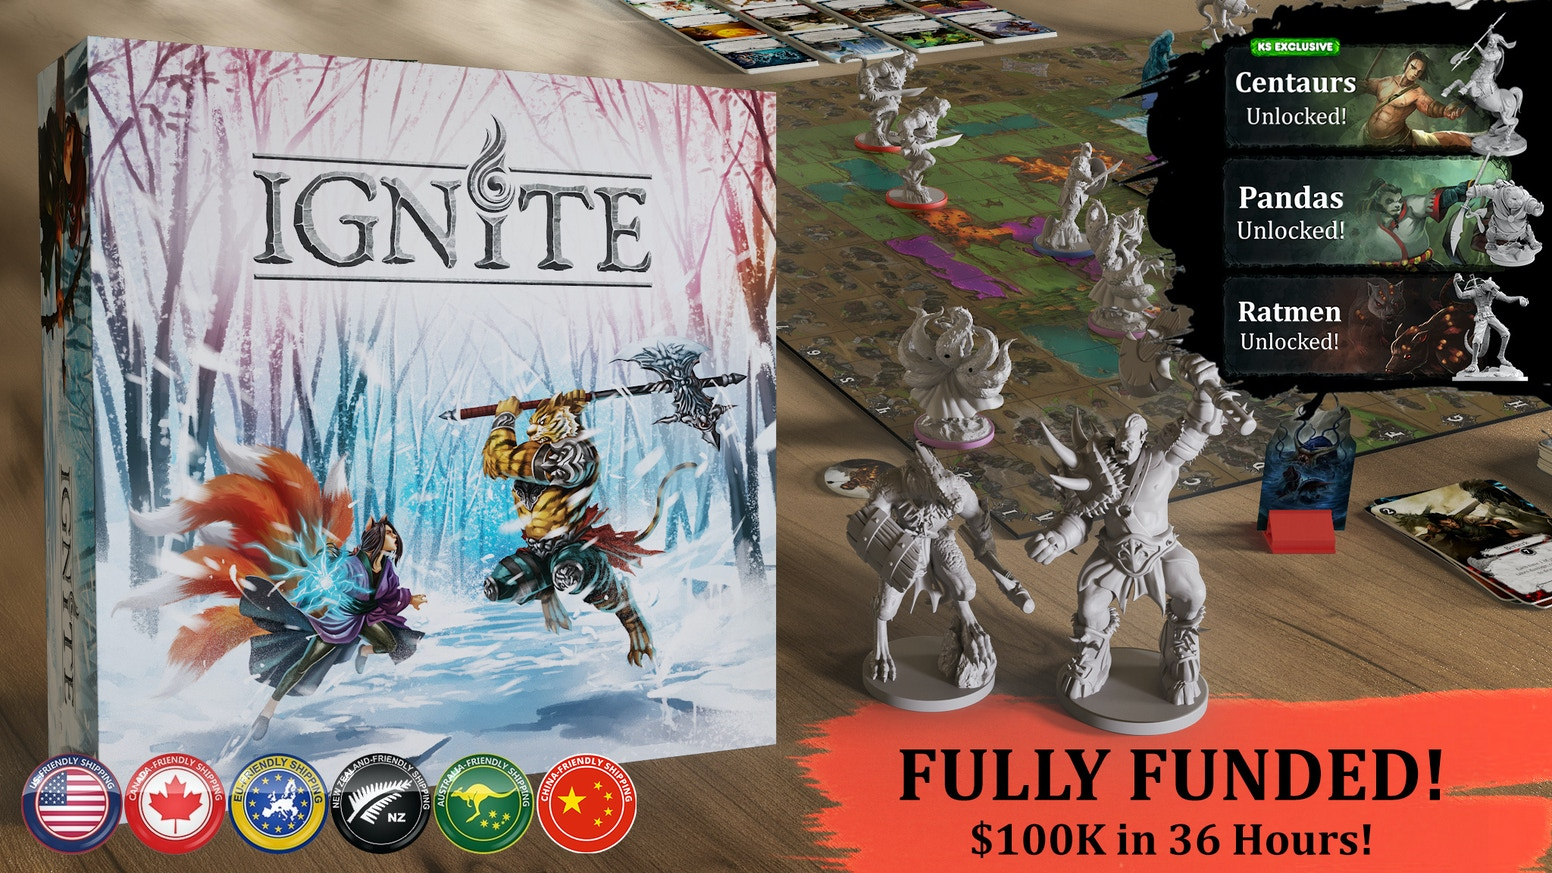 A battling deckbuilder where asymmetrical races fight for survival across a variably built board. Competitive or co-op for 1-8 players.